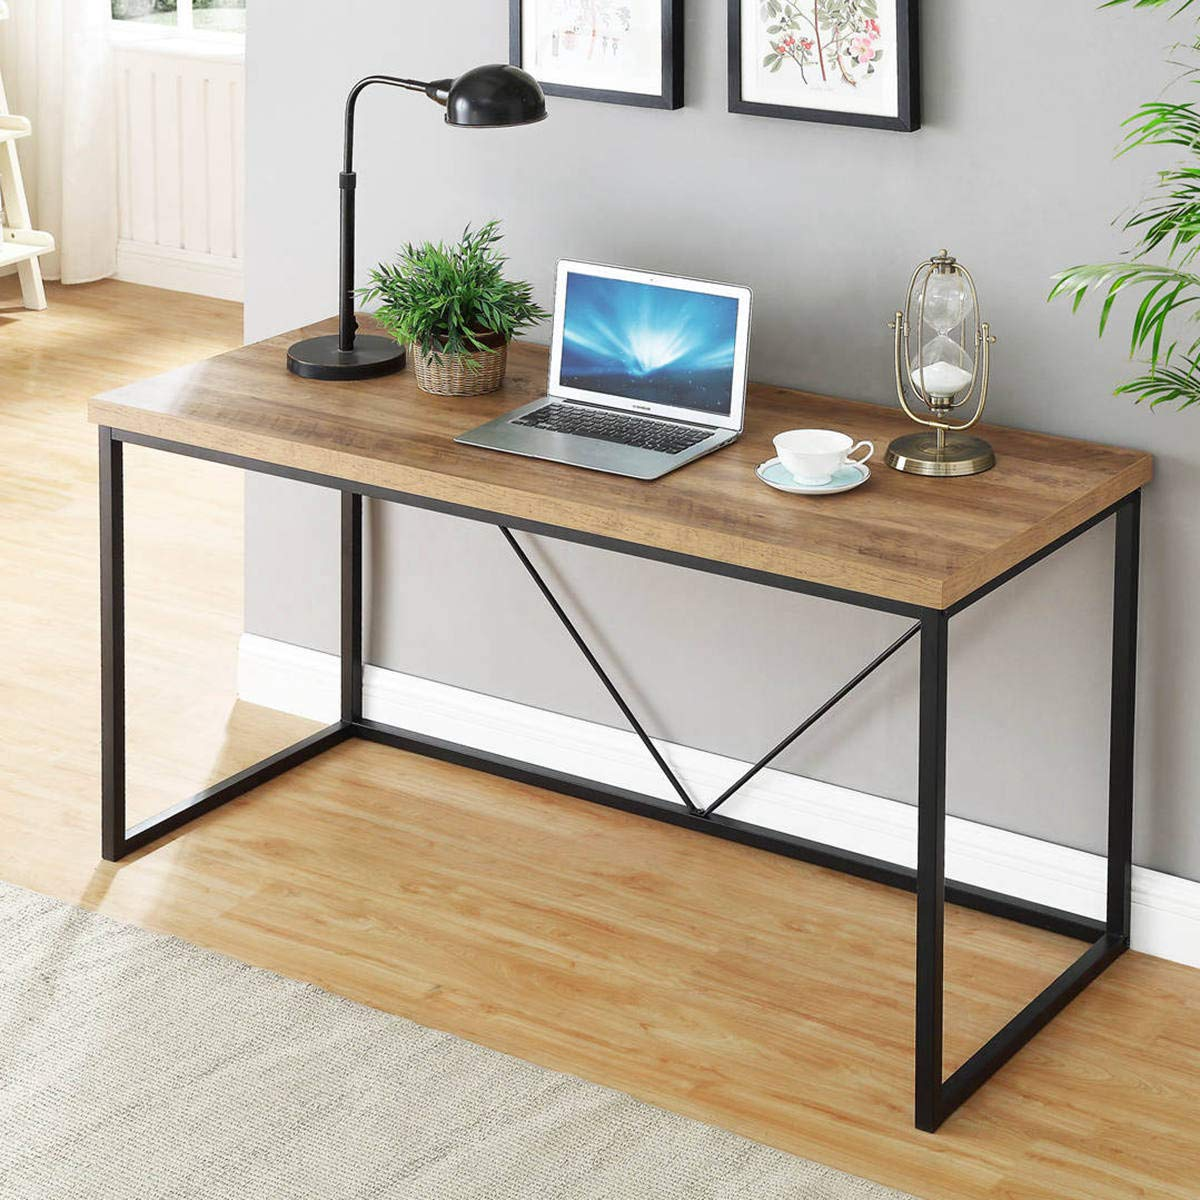 FOLUBAN Rustic Industrial Computer Desk,Wood and Metal Writing Desk, Vintage PC Table for Home Office, Oak 55 inch by Foluban